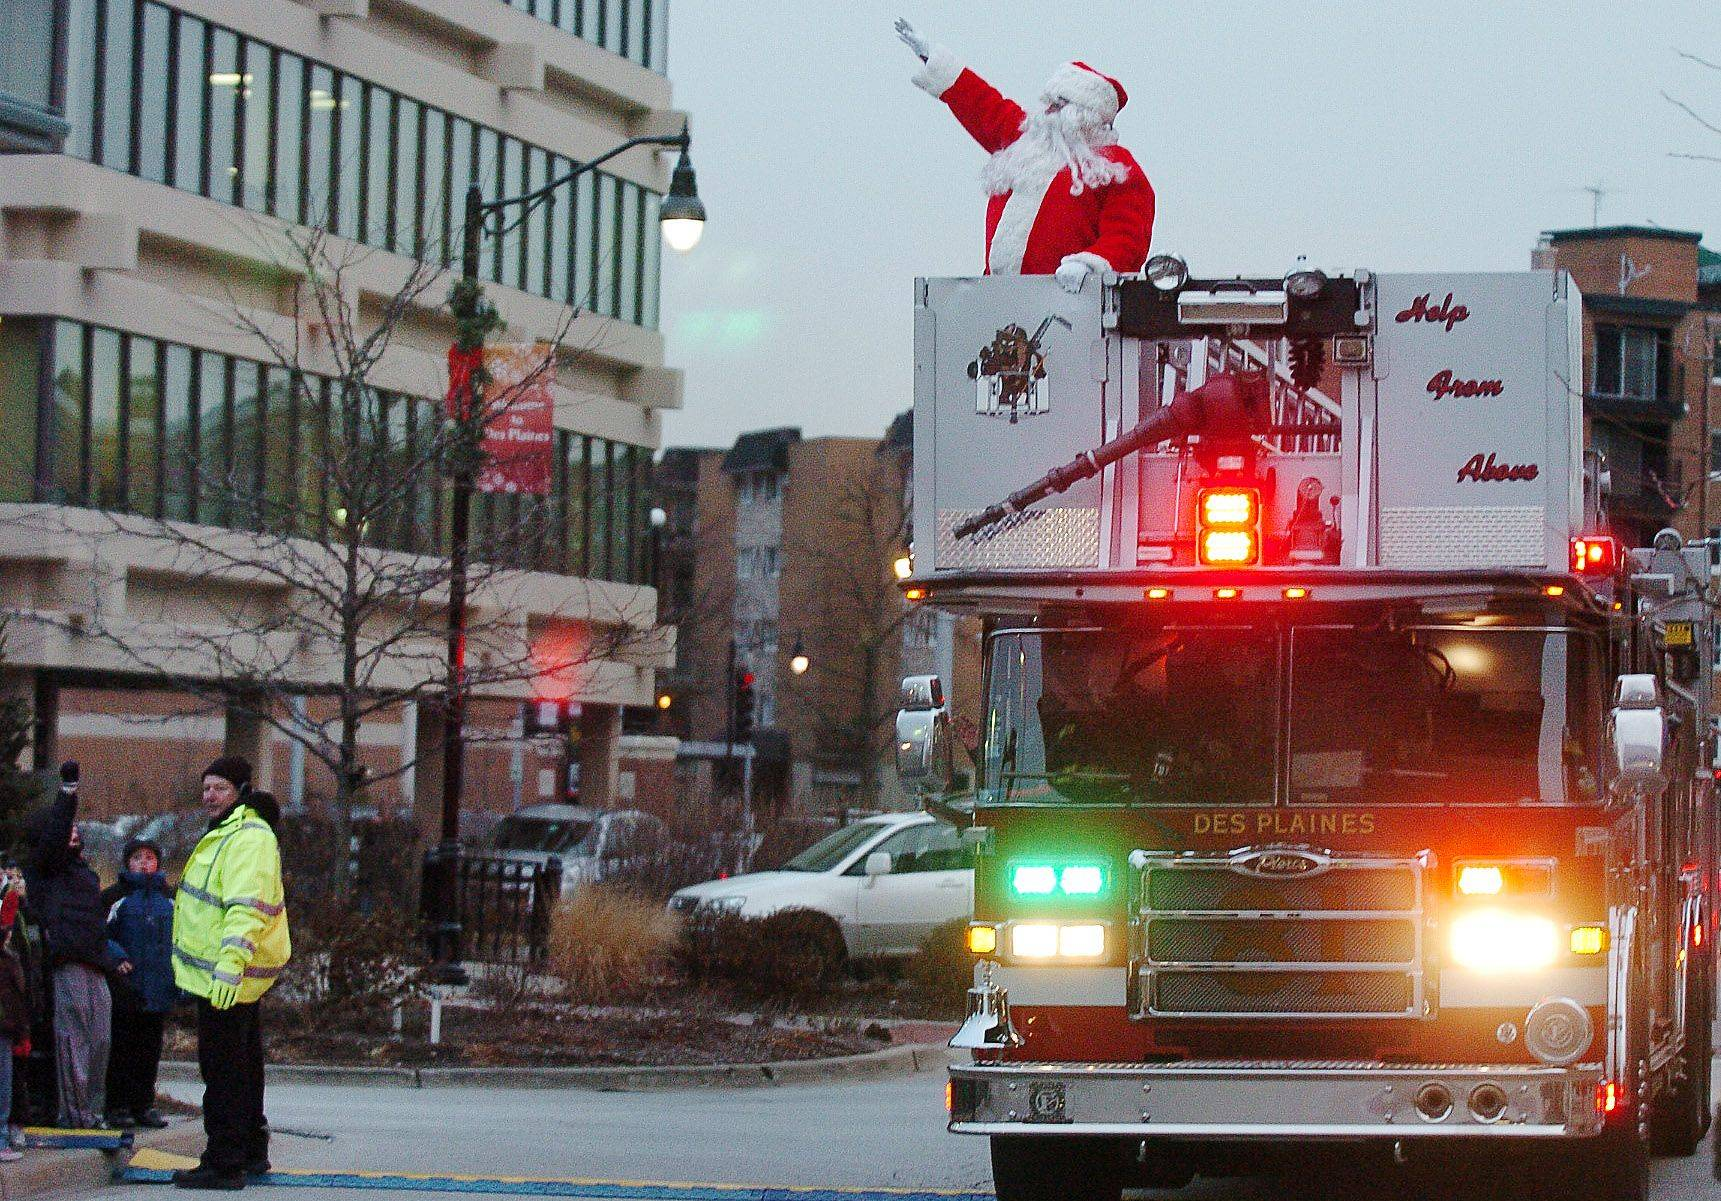 Santa arrives via fire truck to the Des Plaines Christmas tree lighting street fest at Metropolitan Square.